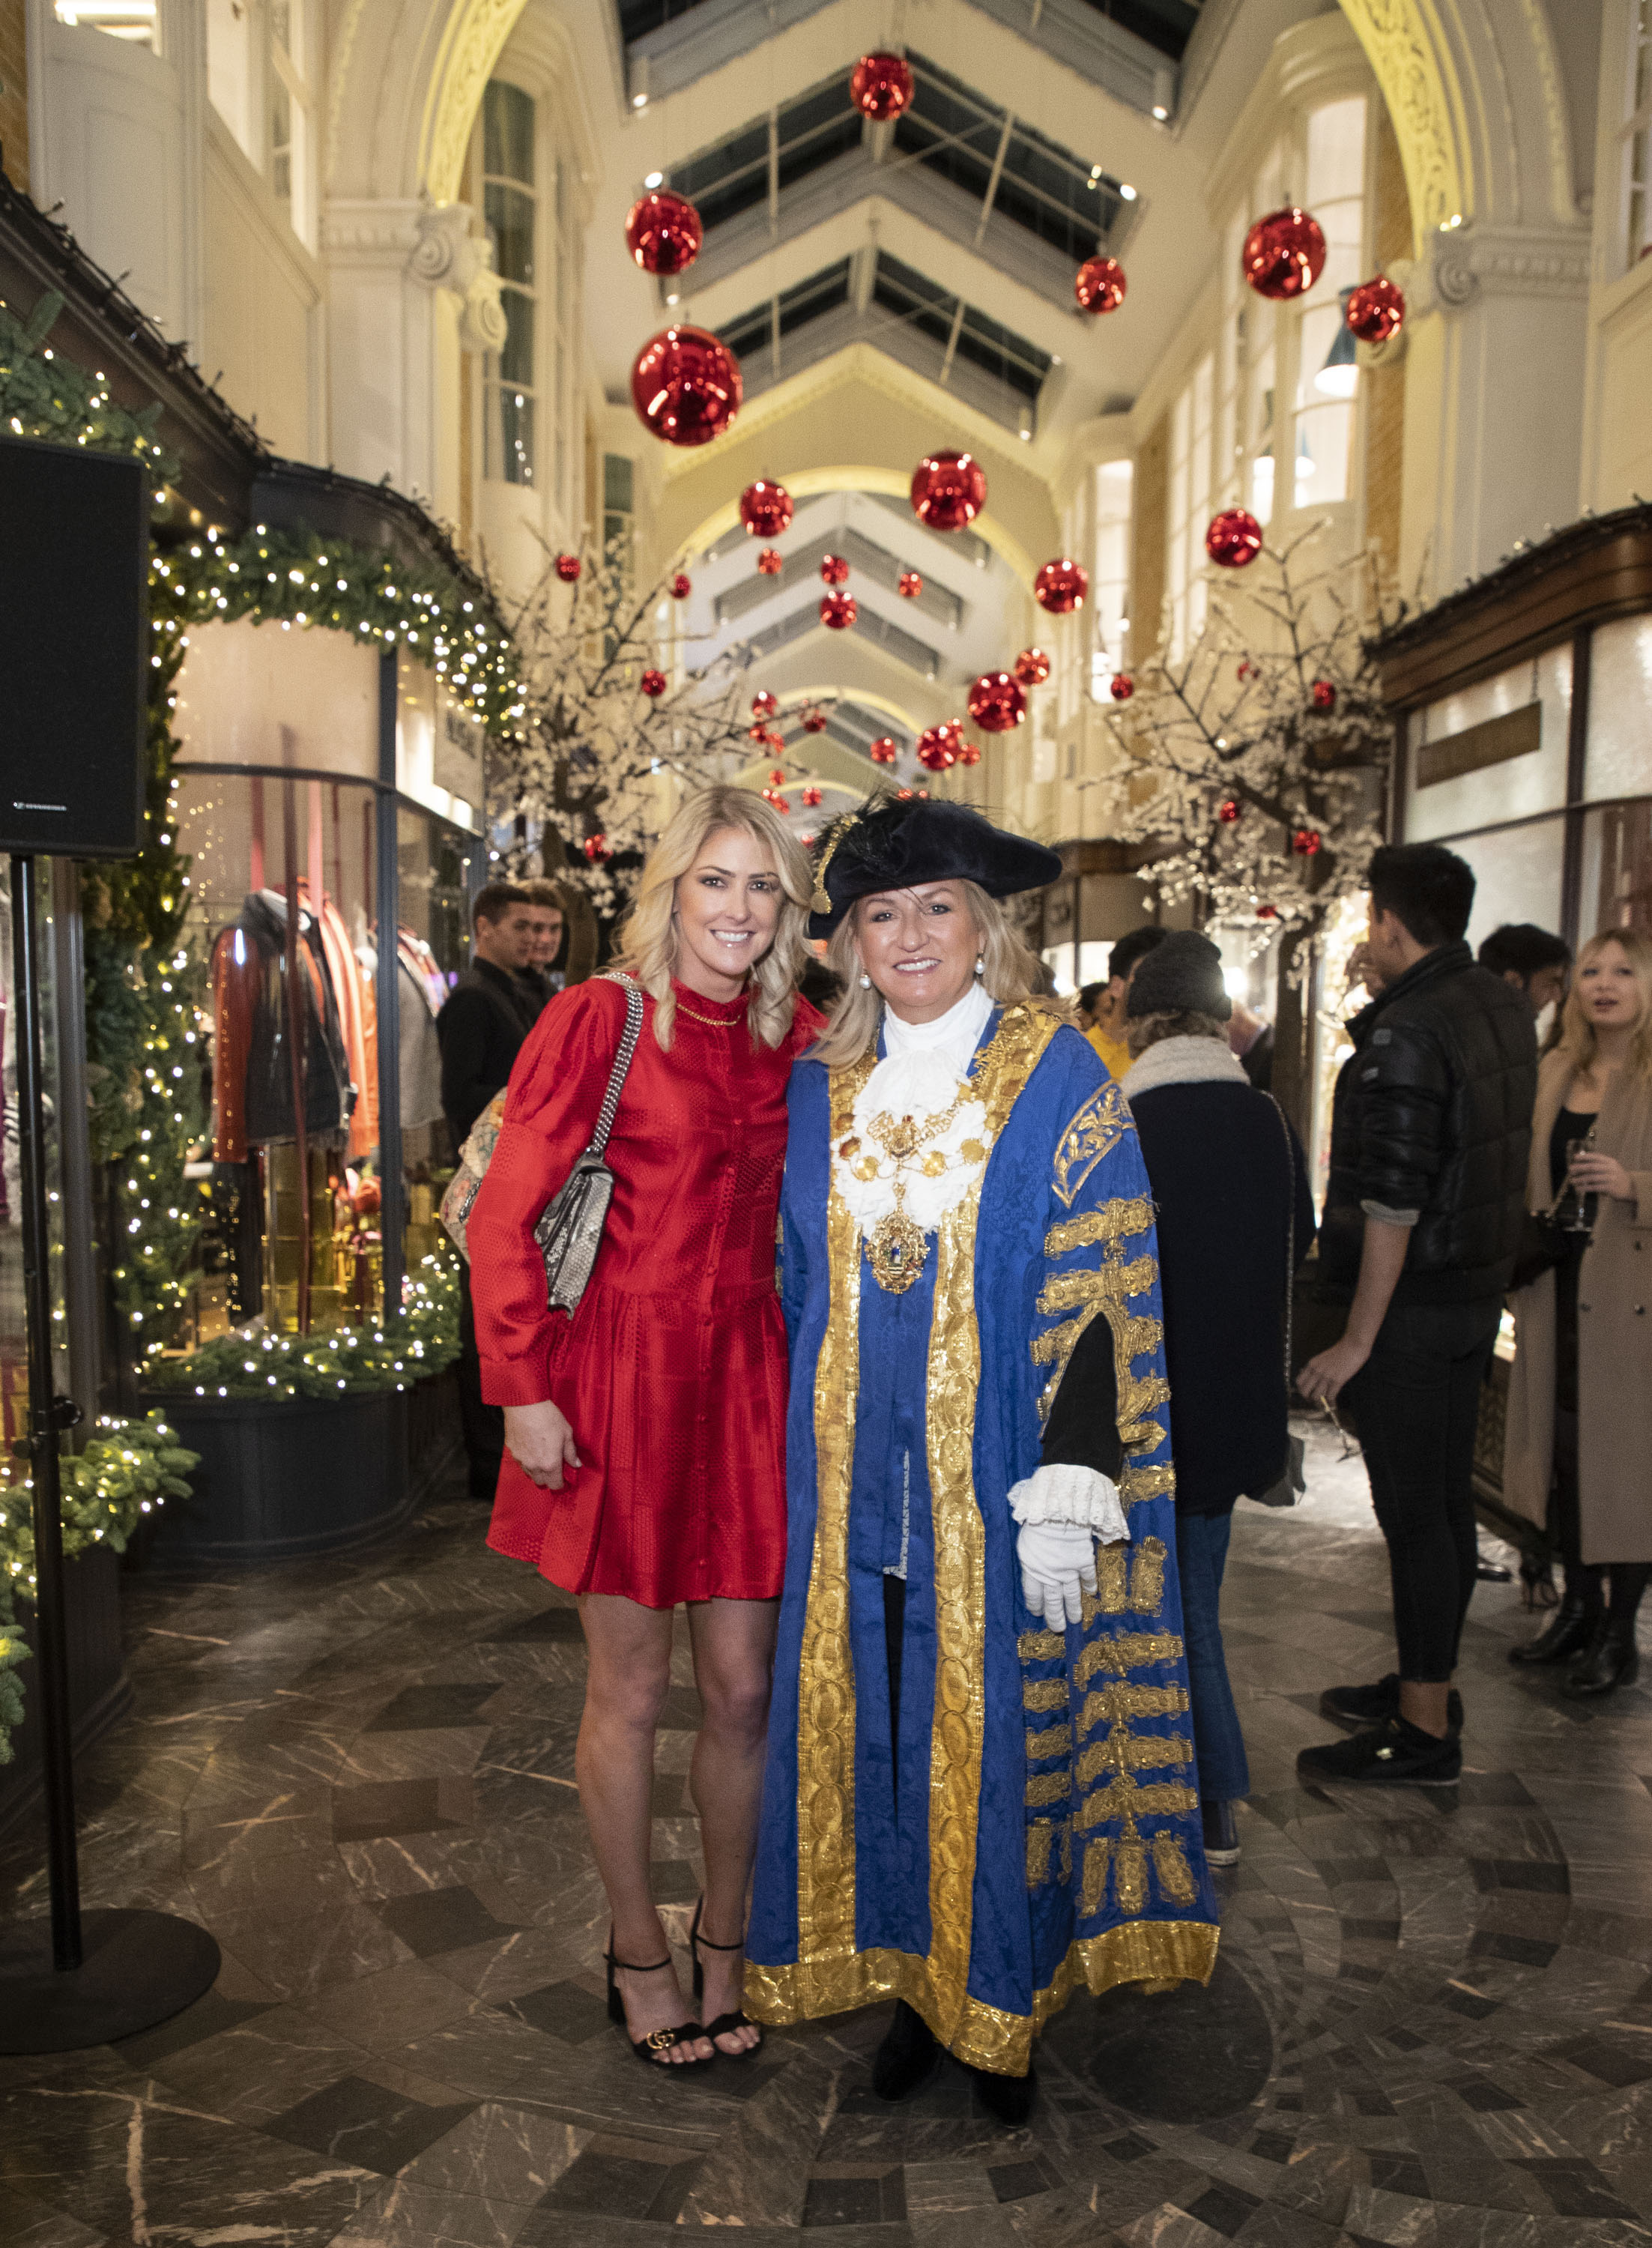 Caroline Lyons, General Manager of Burlington Arcade, and The Right Worshipful Lord Mayor of Westminster Councillor Lindsey Hall at Burlington Arcade, Chritsmas Lights.JPG